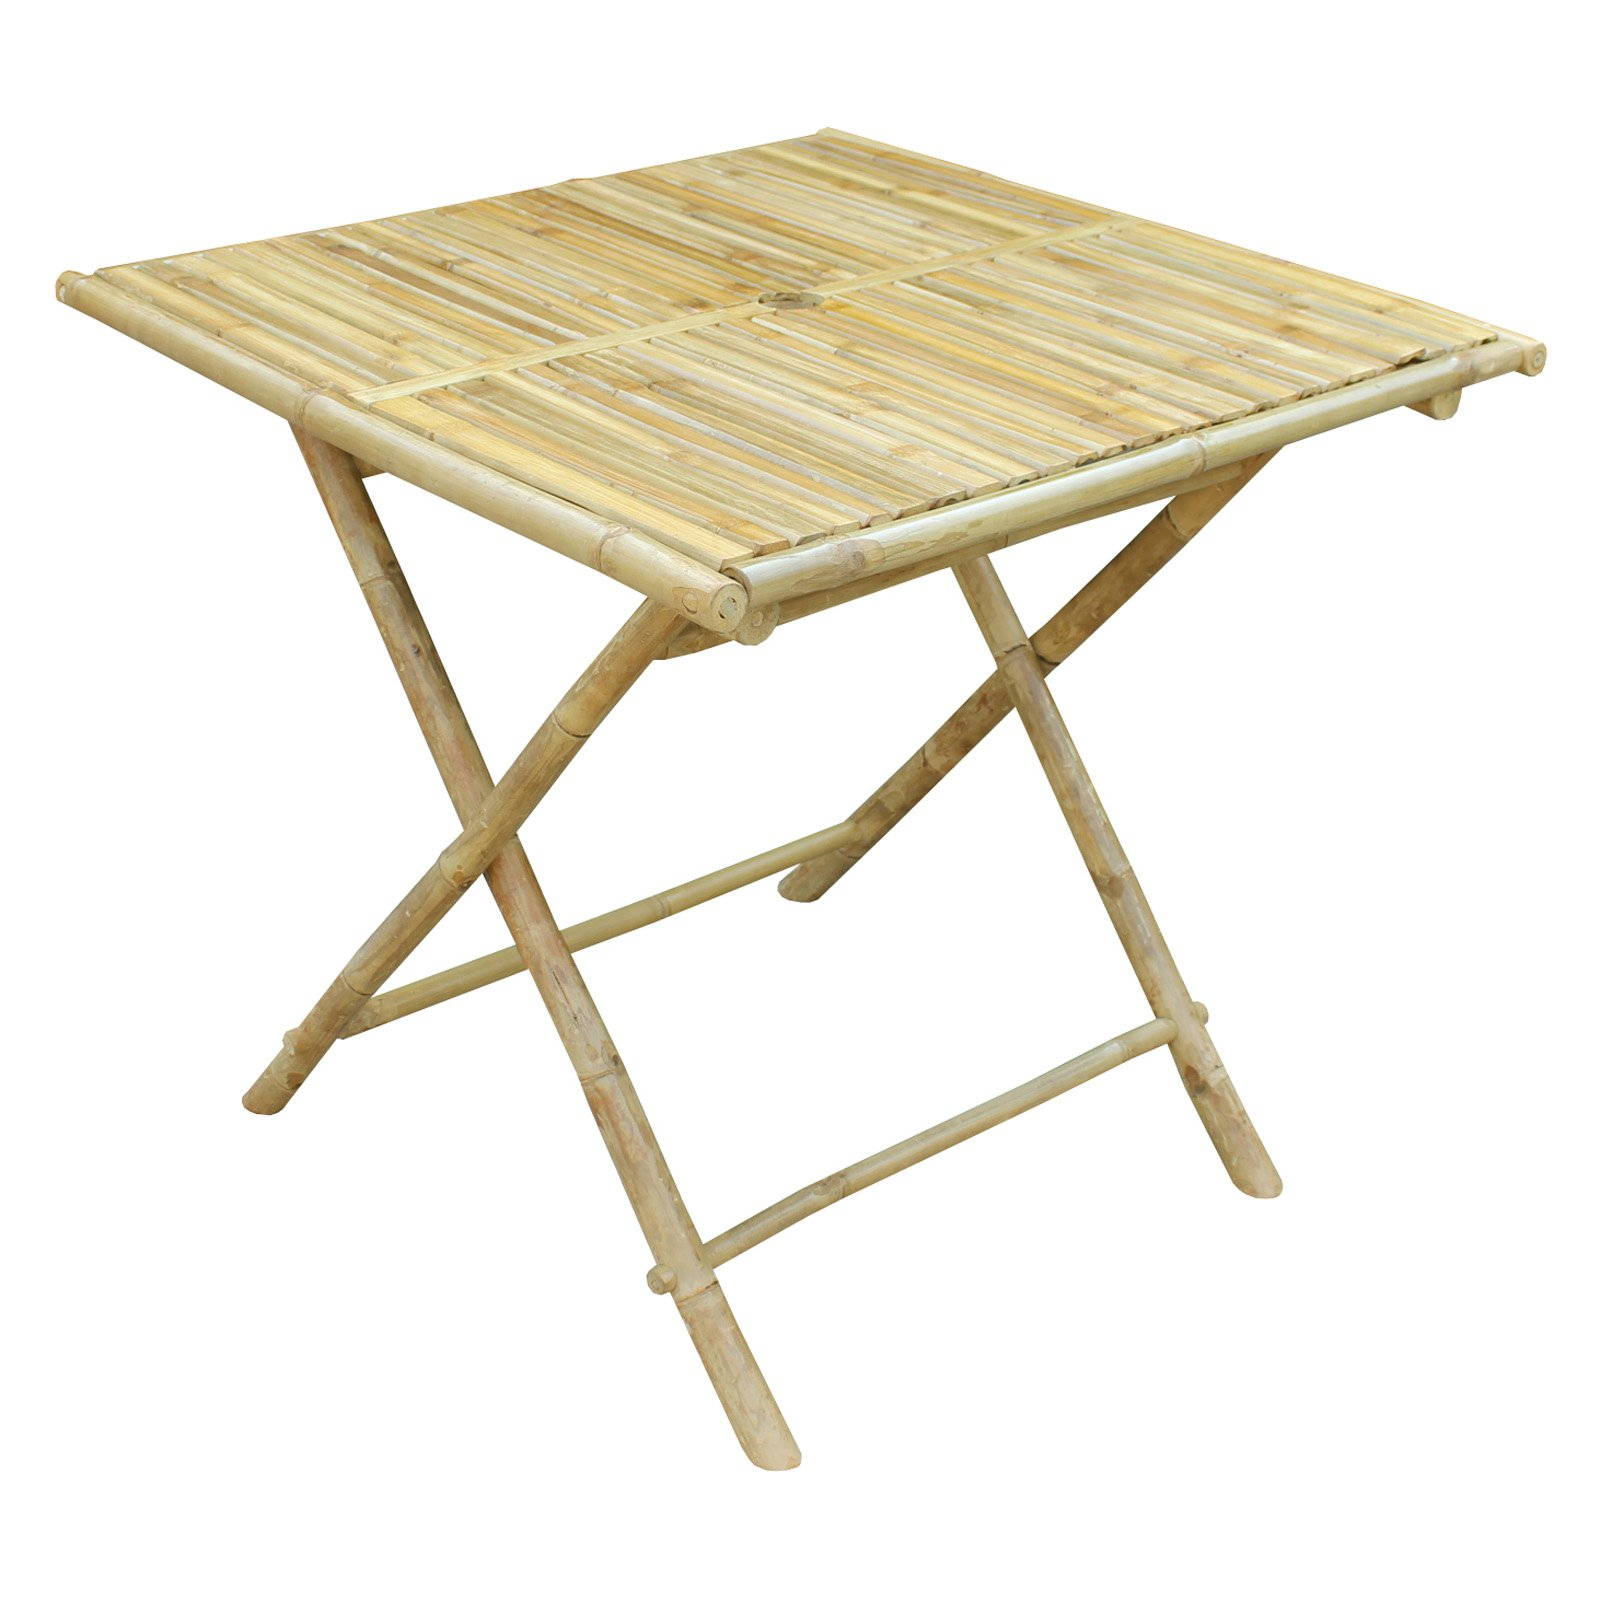 Zew Hand Crafted Square Folding Bamboo Patio Bistro Table